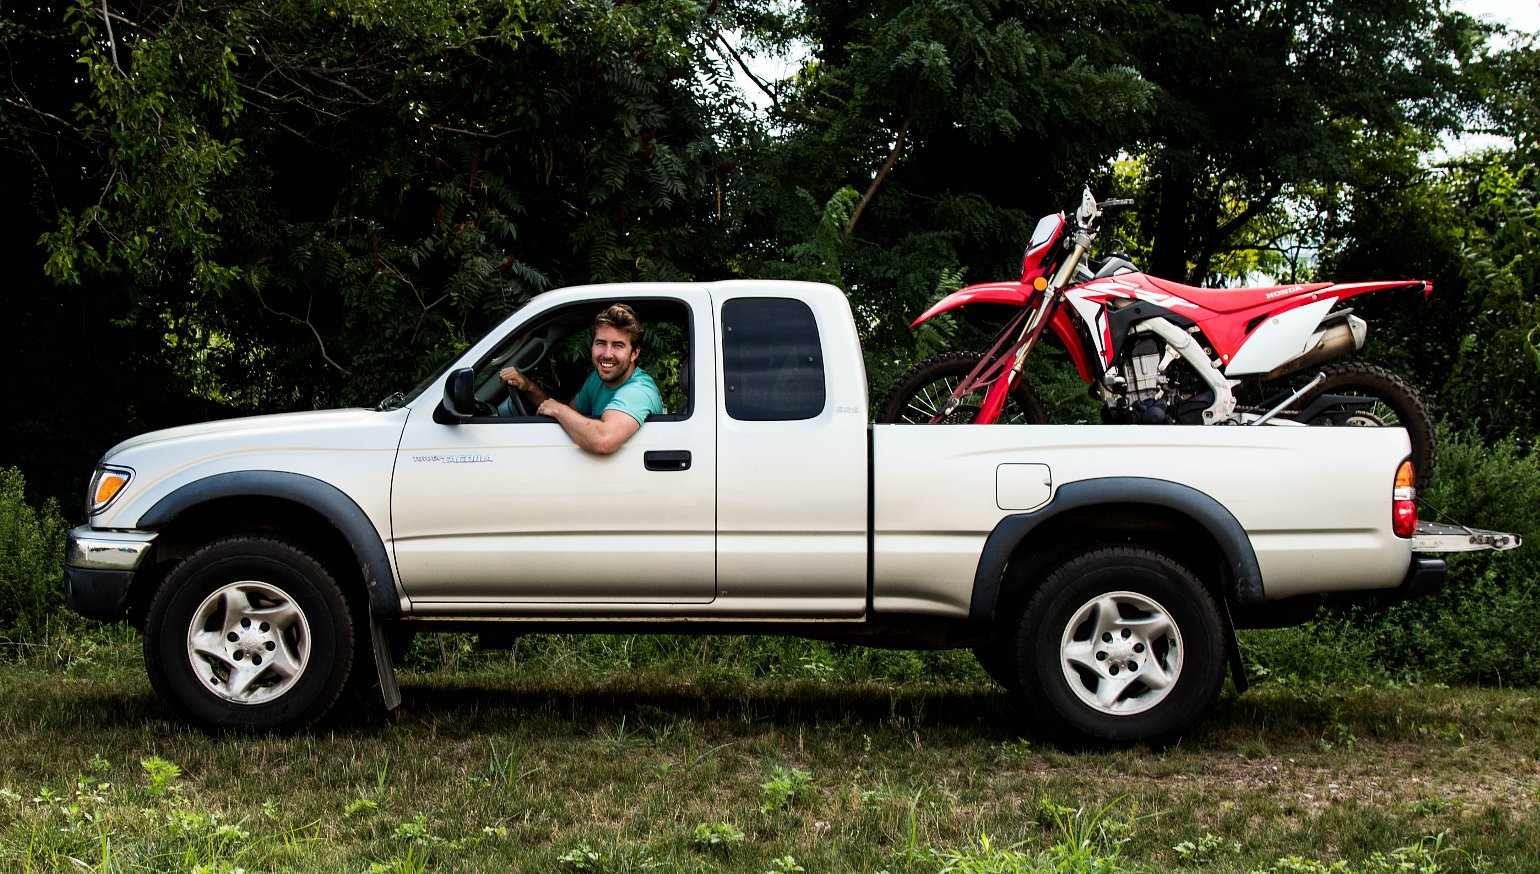 How to load a dirt bike into a pickup truck